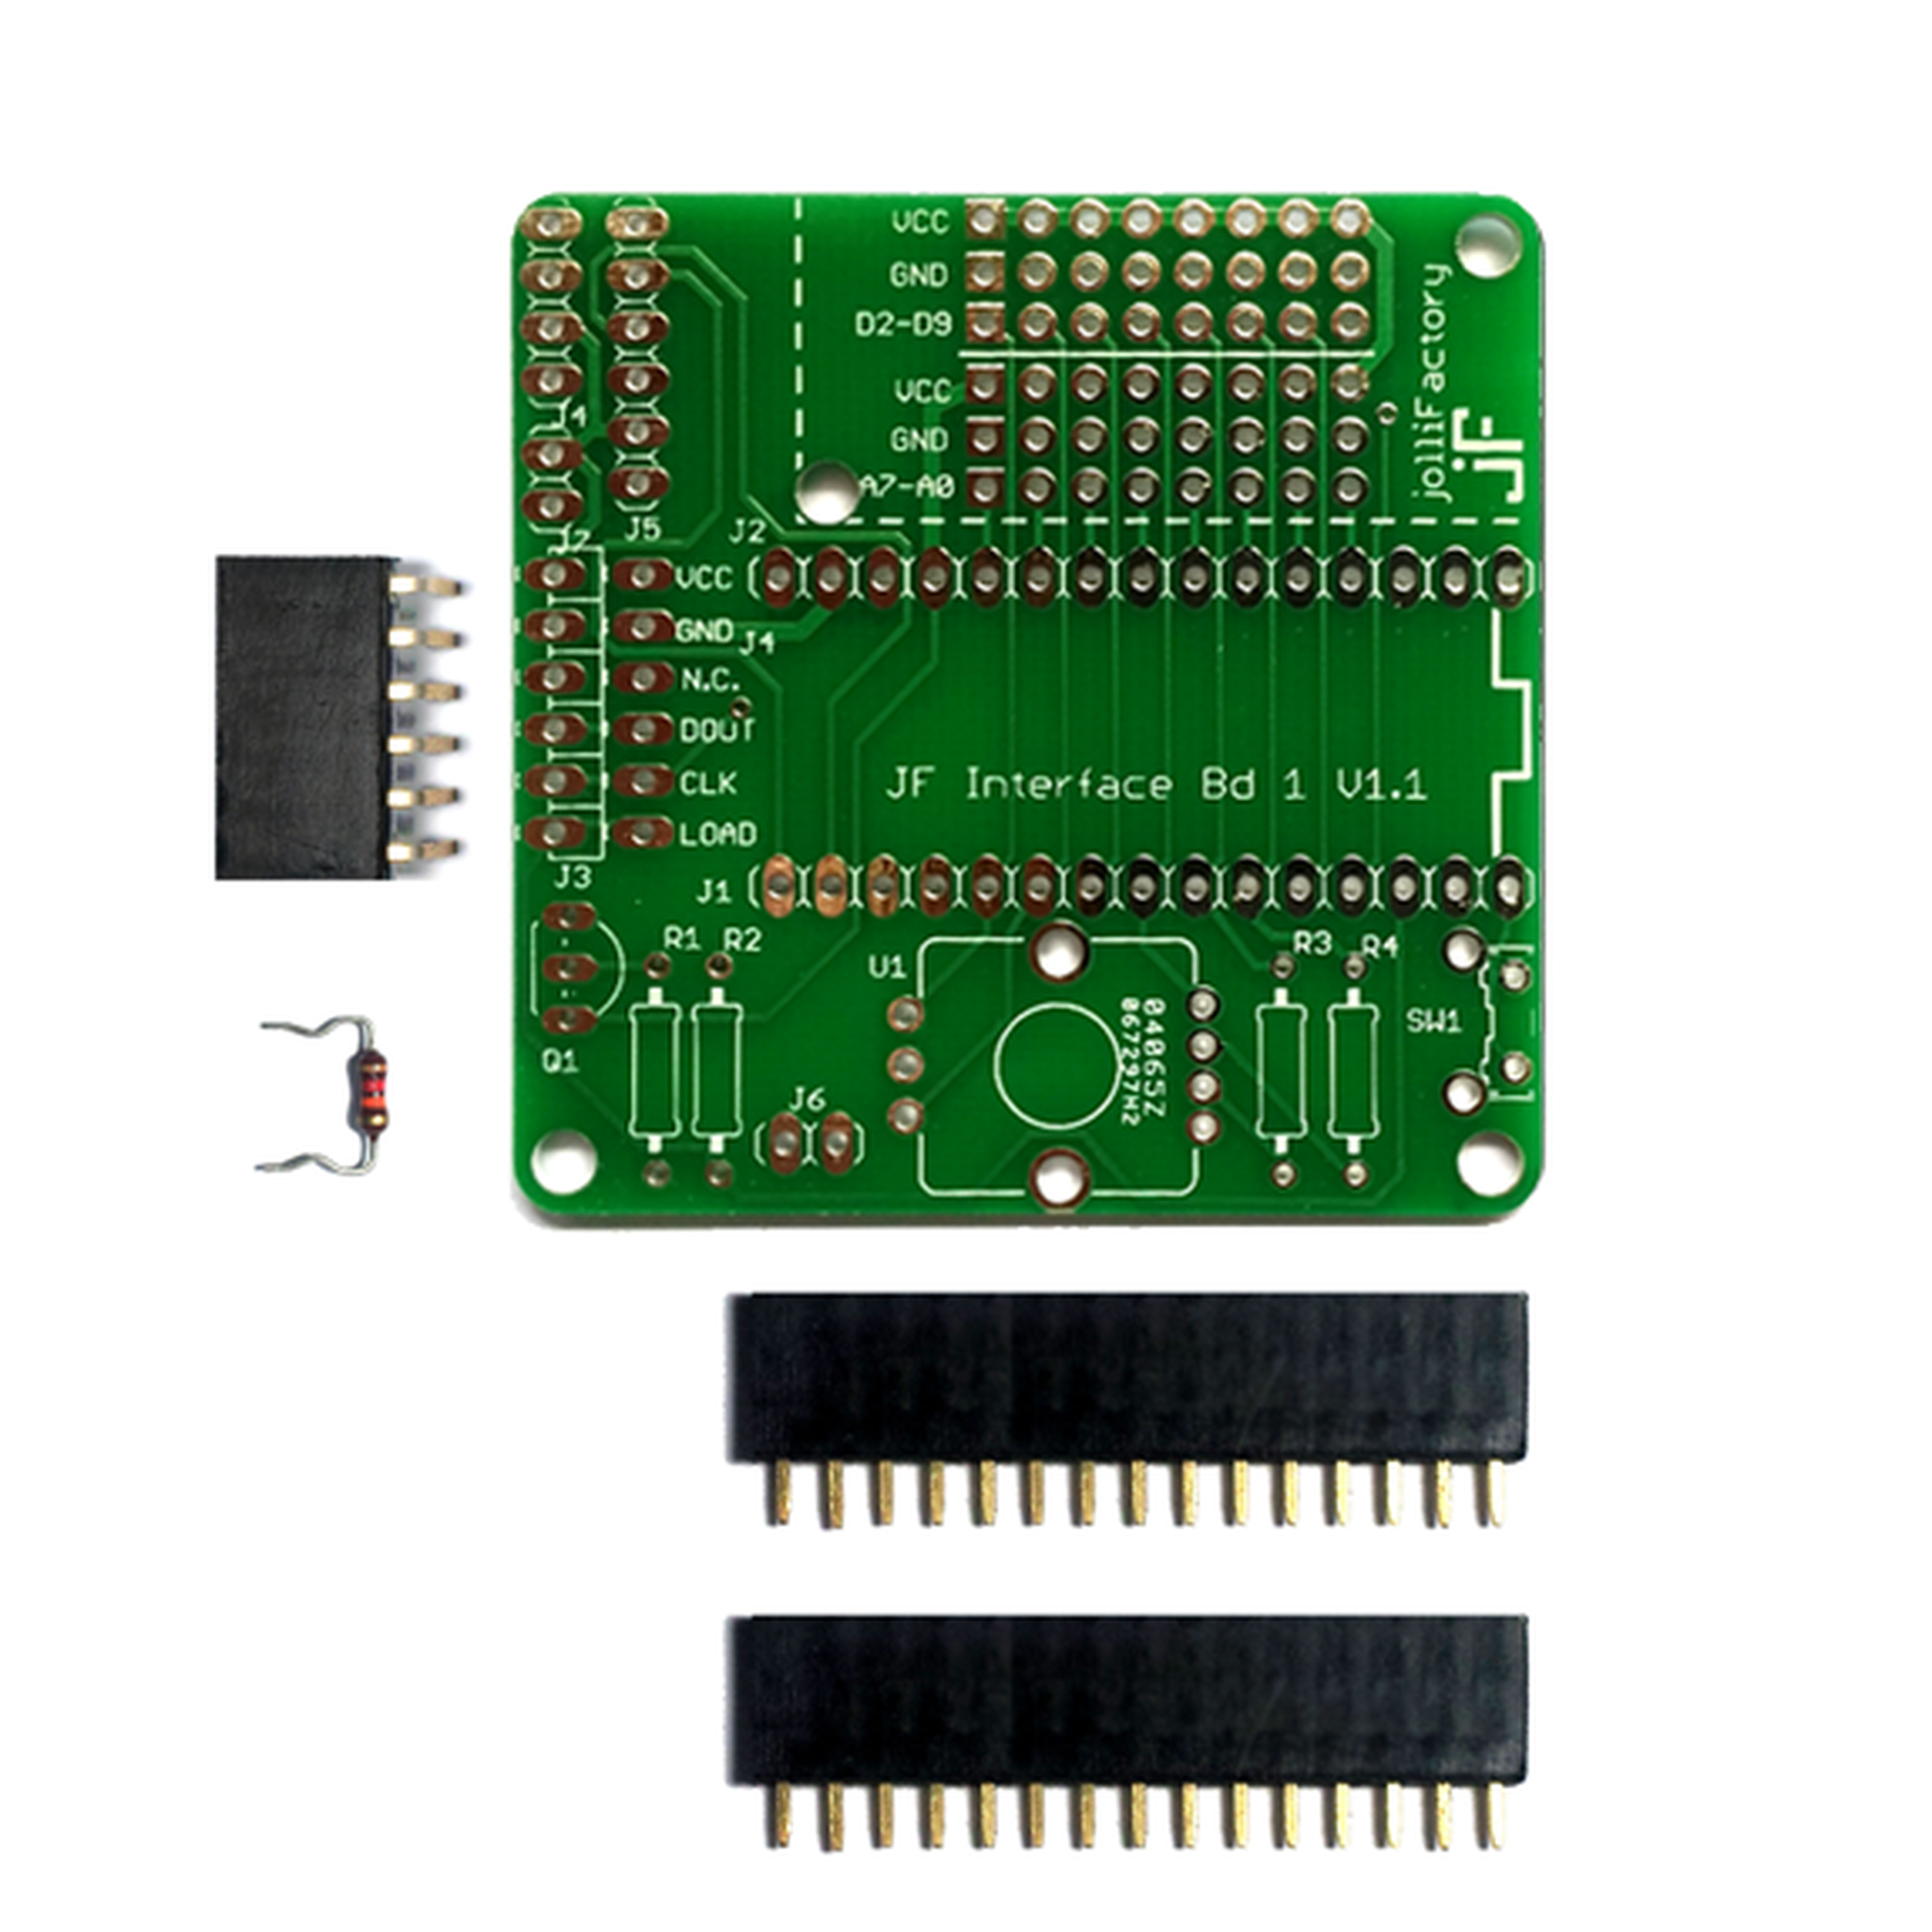 Jf Interface Board 1 Bare Pcb With Headers From Jollifactory Best Sell Circuit Diagram Buy 2